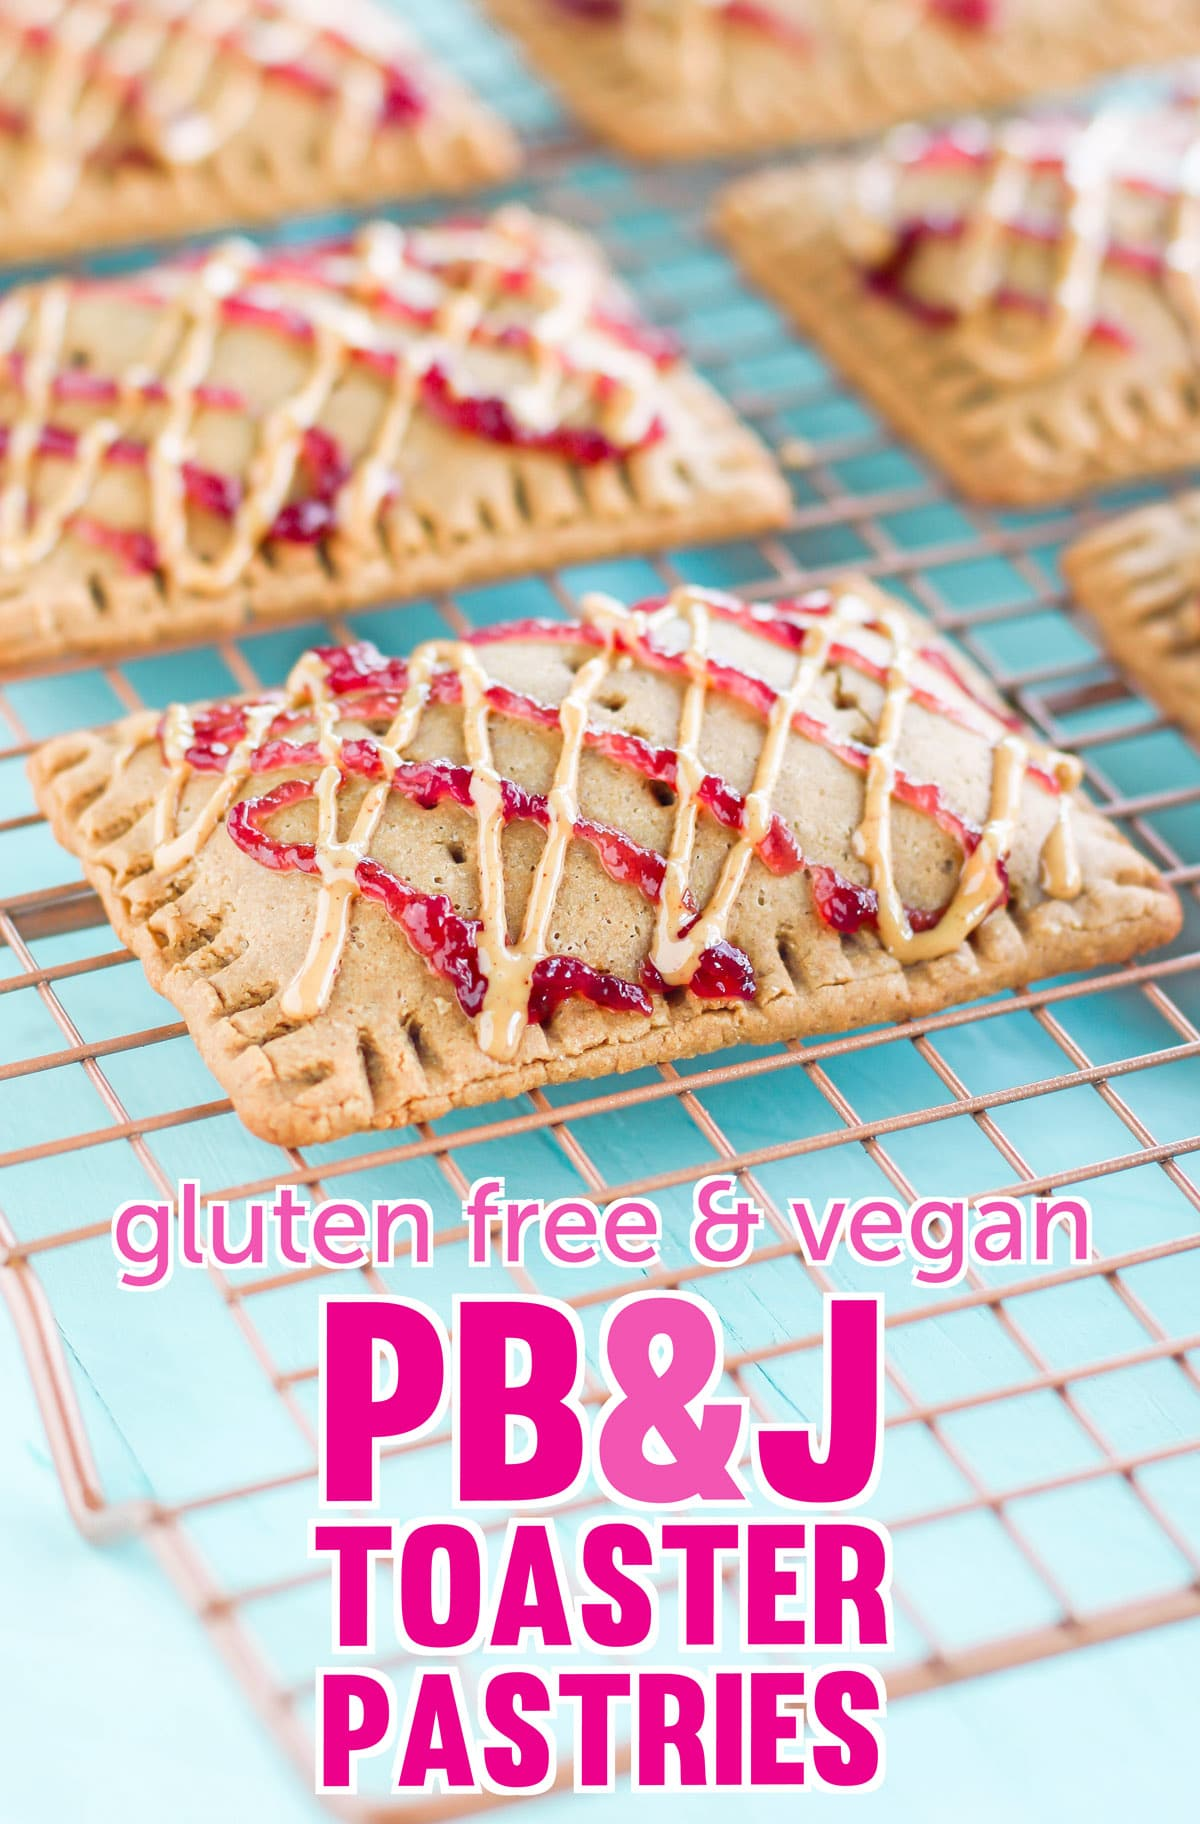 Homemade Peanut Butter and Jelly Toaster Pastries (gluten free, high protein, made with less sugar)